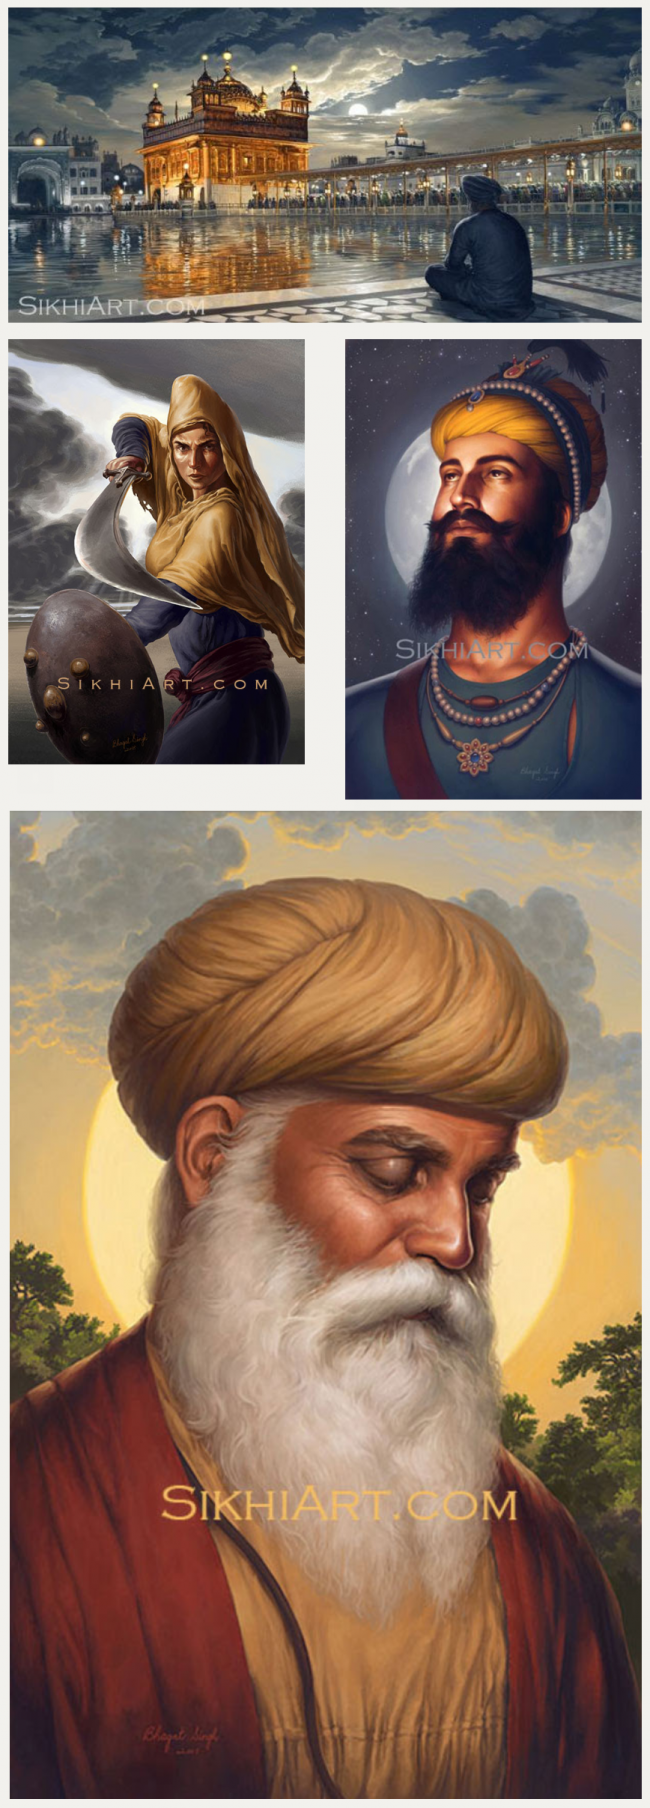 sikhi art paintings body.png